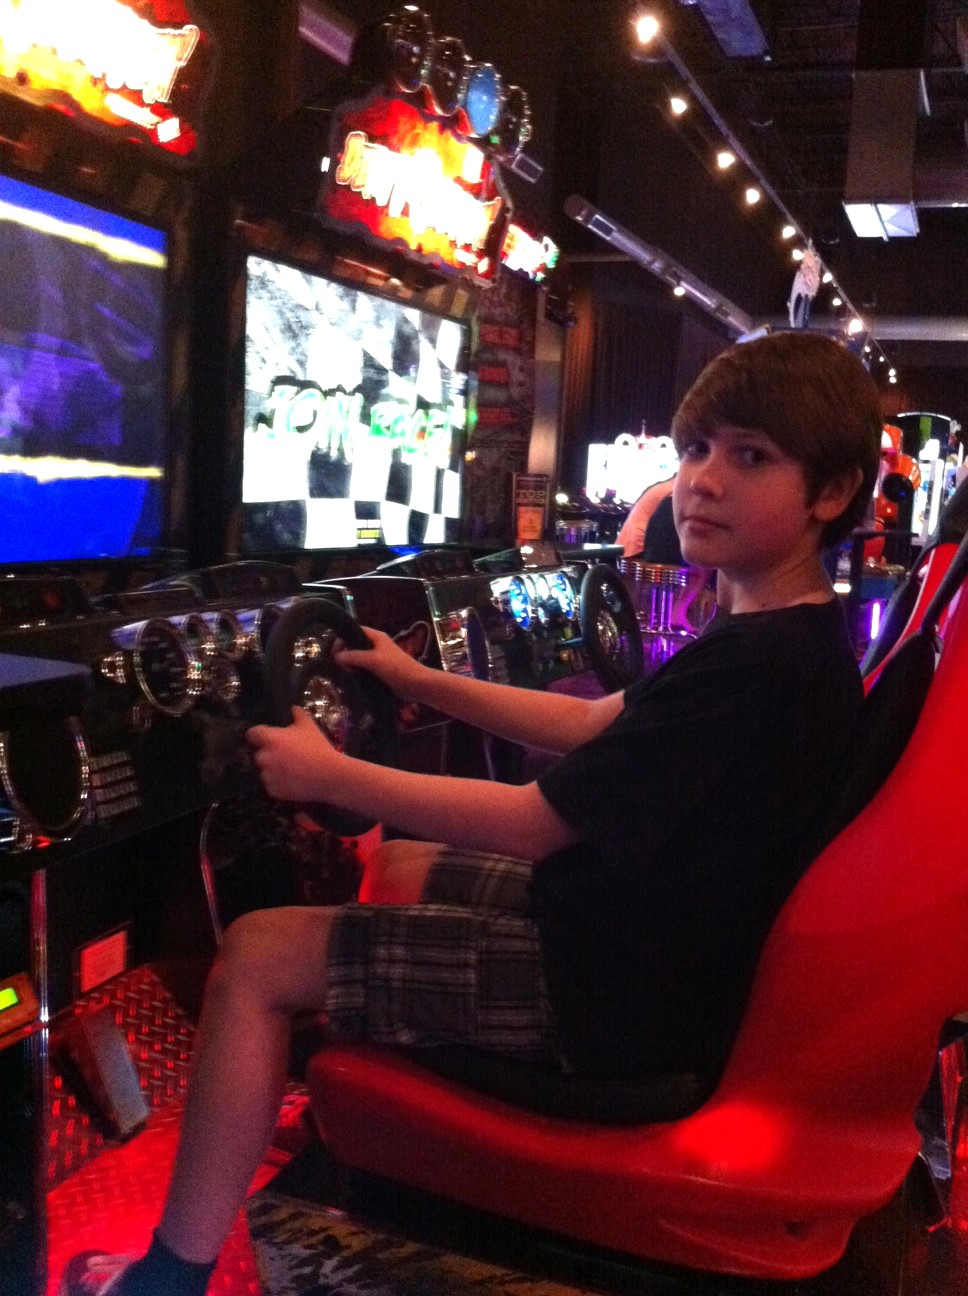 Dave & Buster